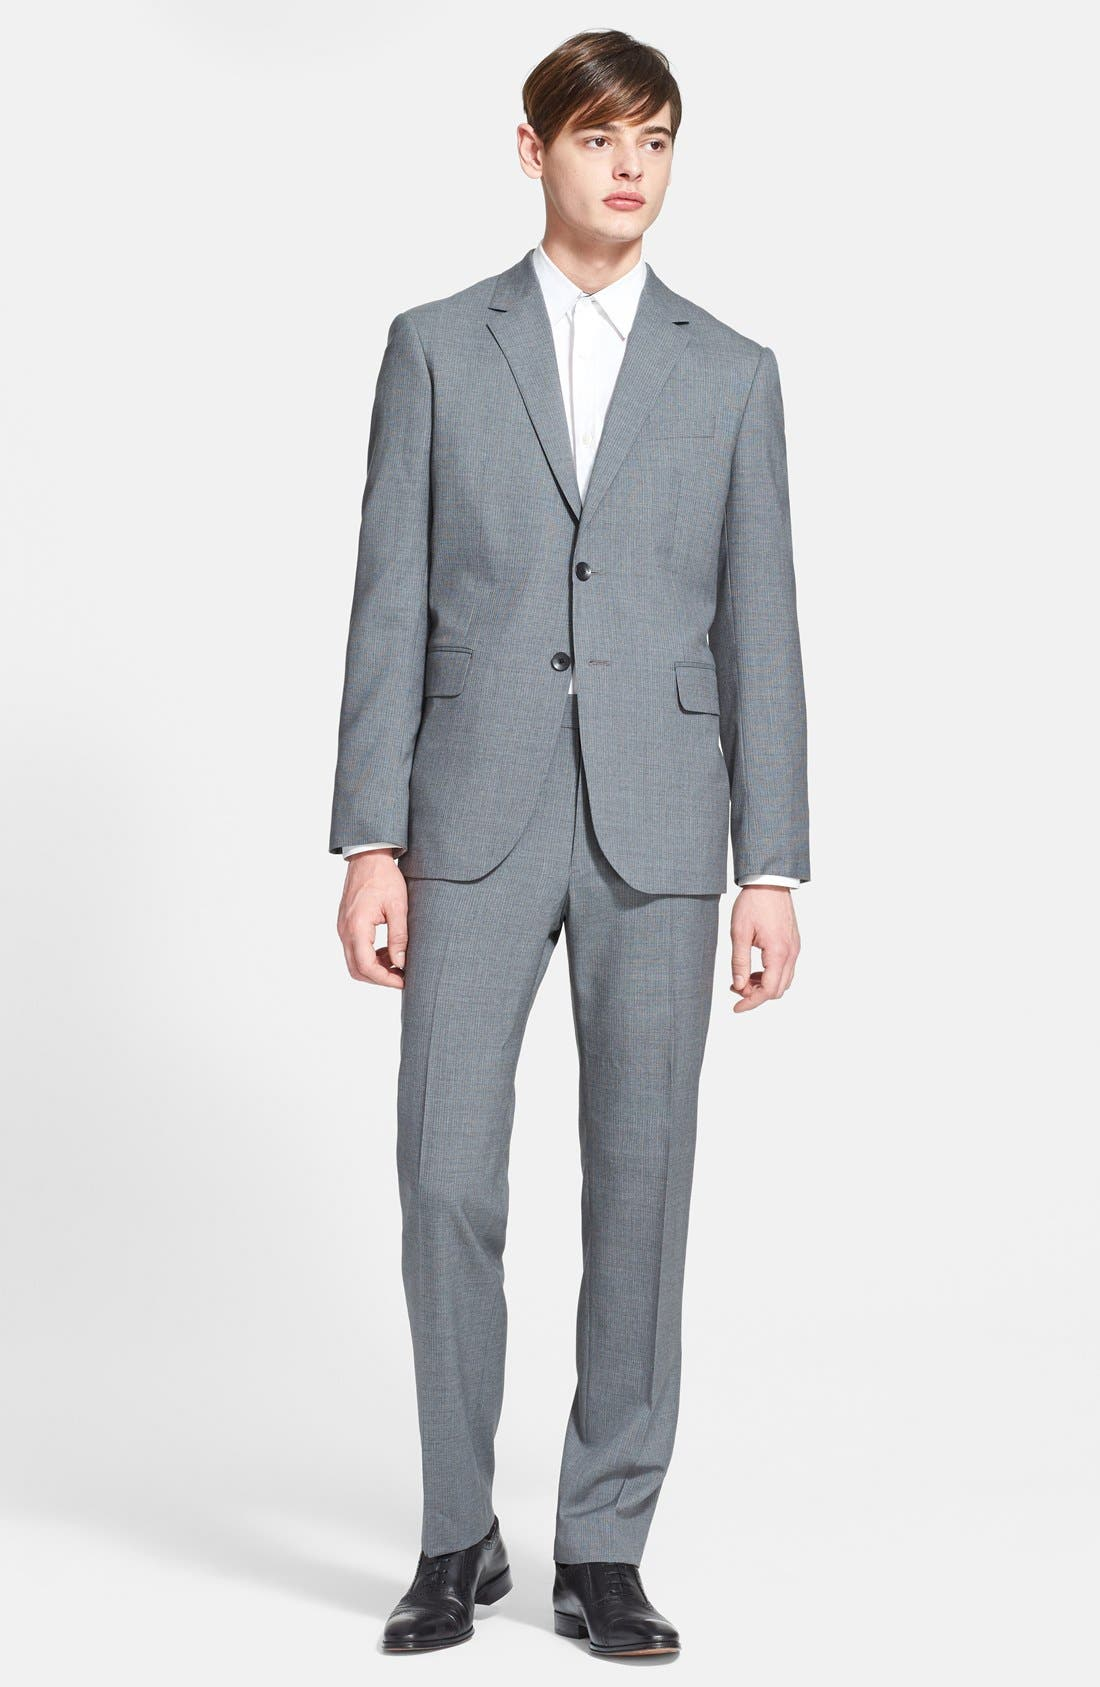 Alternate Image 1 Selected - rag & bone Pinstripe Wool Suit